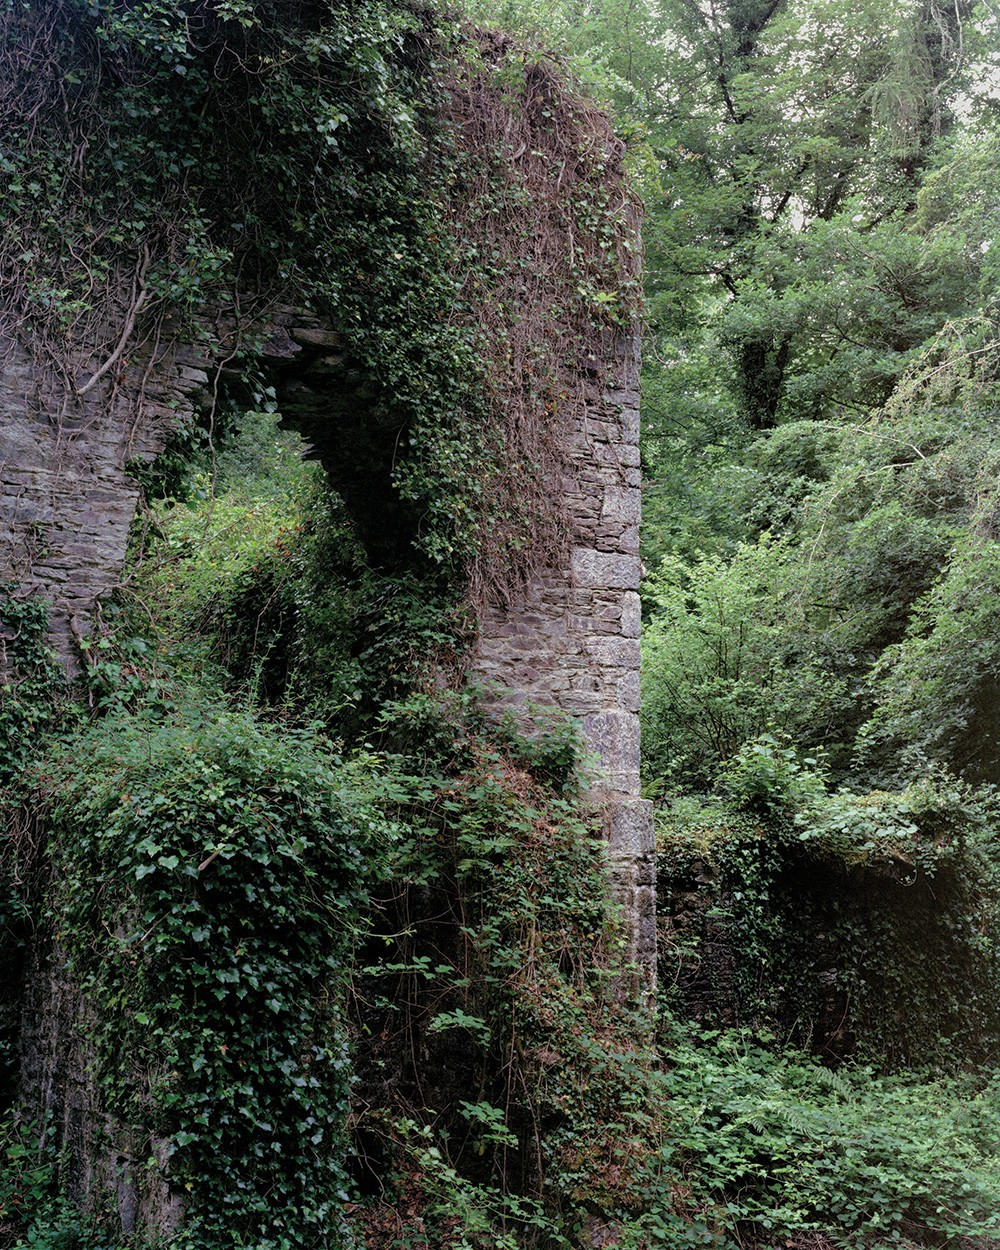 A photo of a tall stone structure overgrown with plants in a forest.